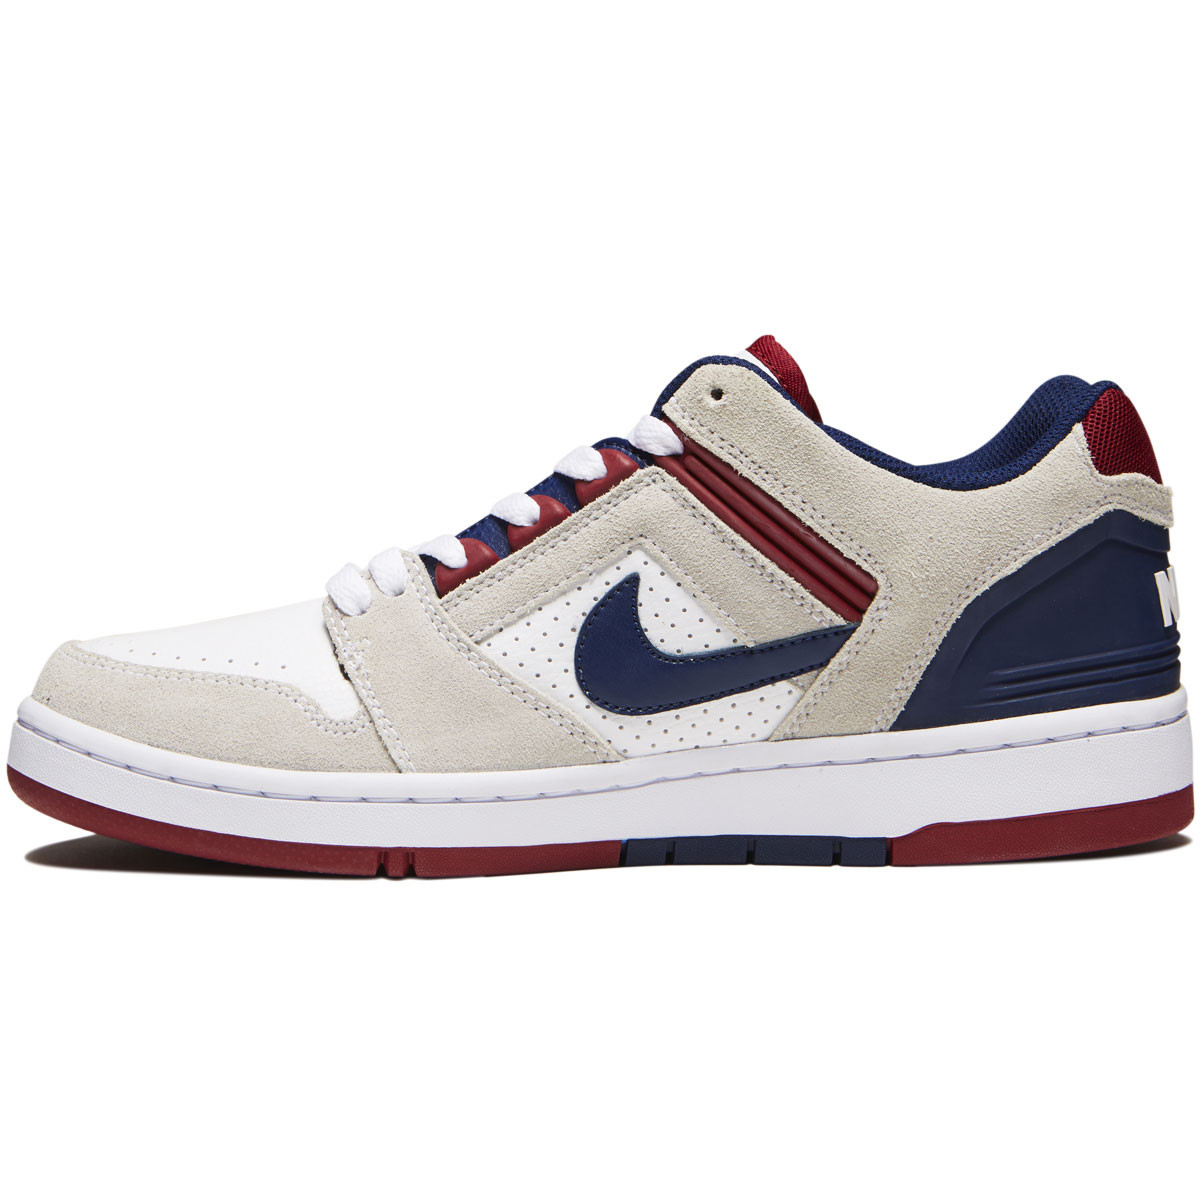 31980859c72 Nike SB Air Force II Low Shoes - White Blue Void Red Crush White